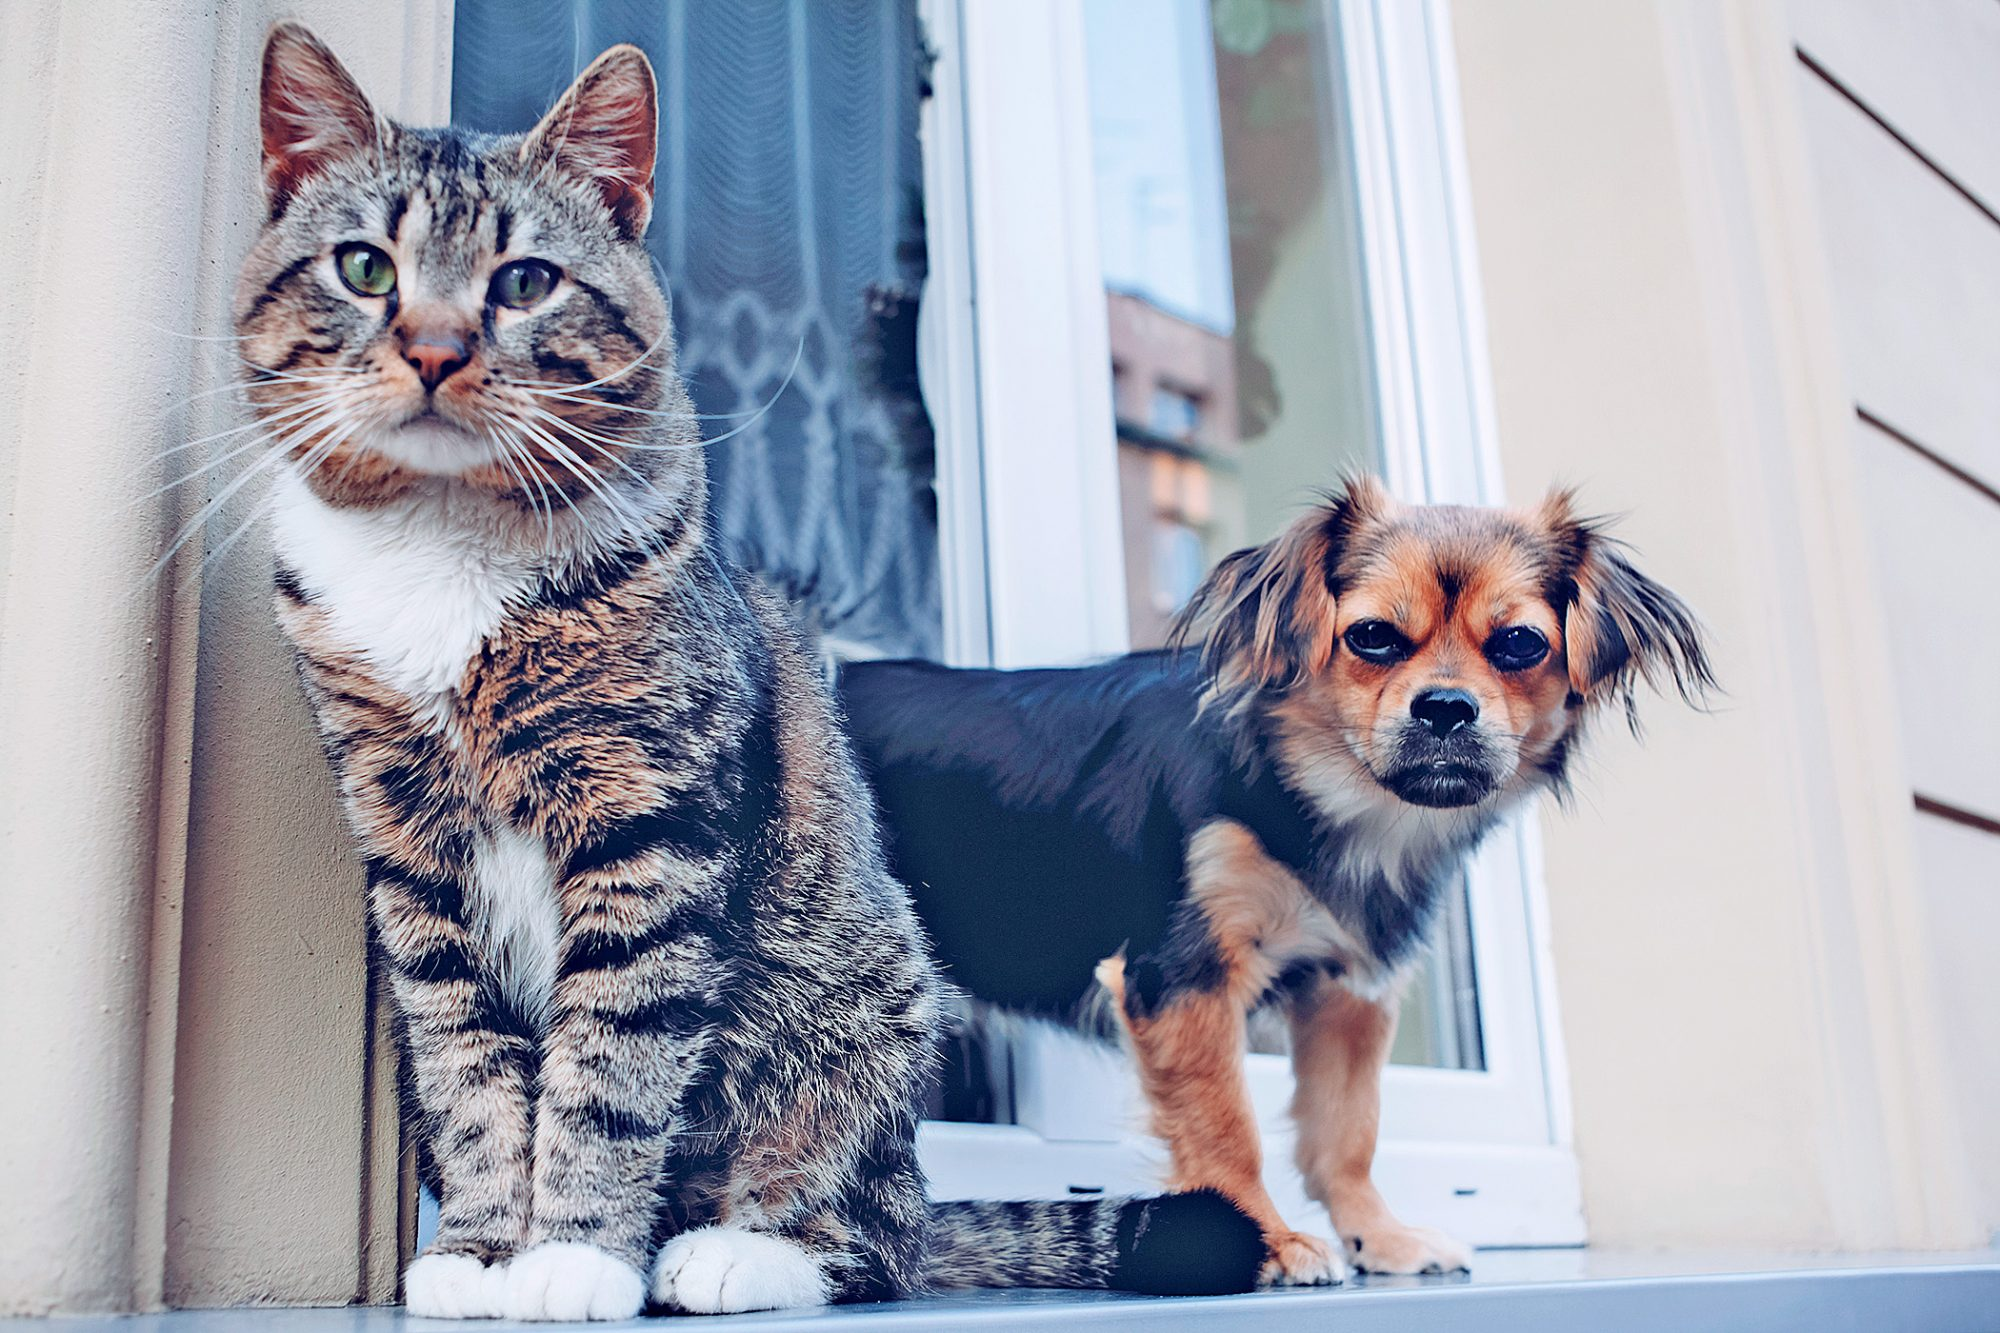 cat and dog at the door outside